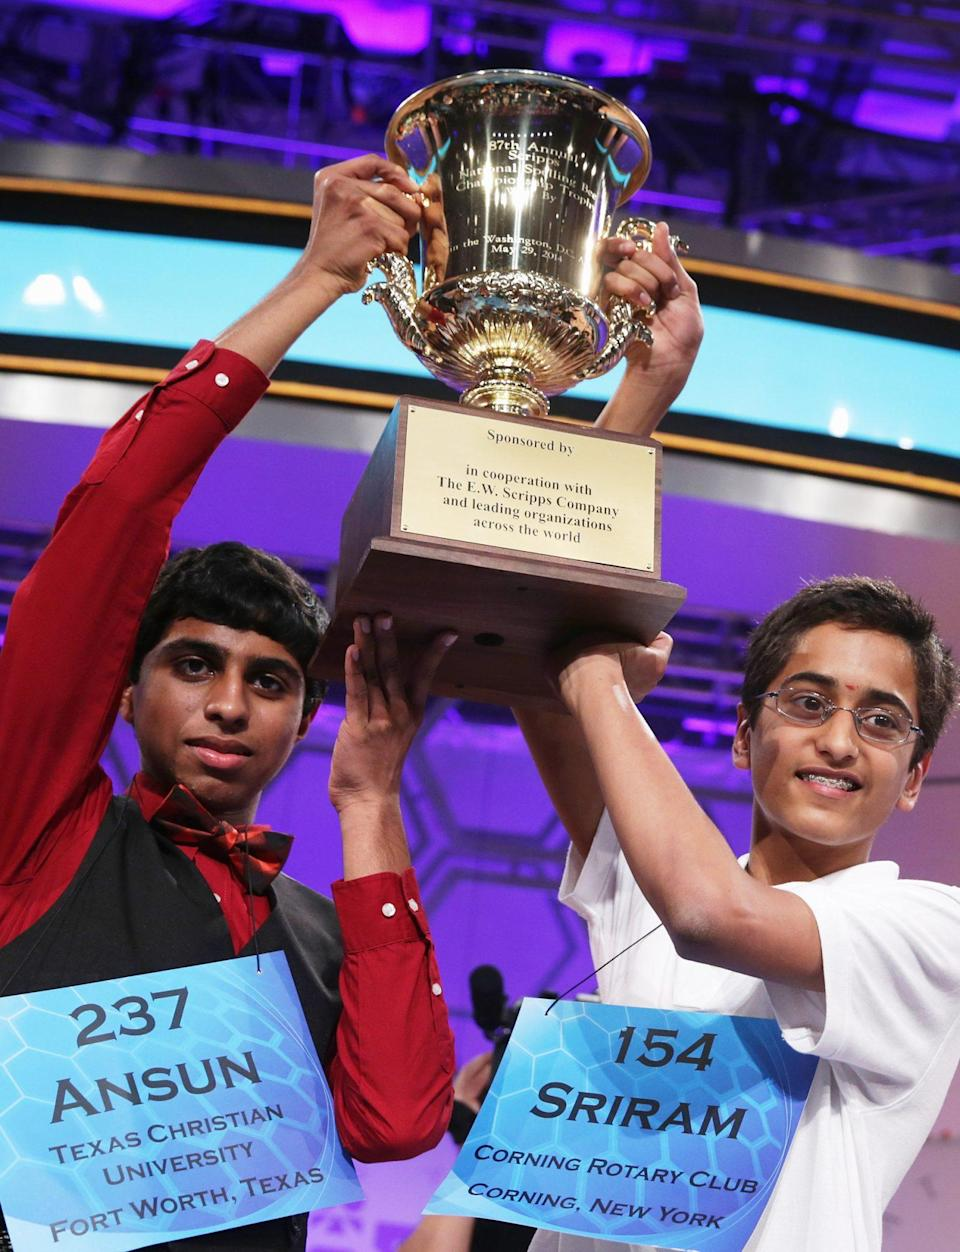 <p><strong>Winners: </strong>Sriram Hathwar and Ansun Sujoe</p> <p><strong>Words they won with: </strong>stichomythia and feuilleton</p>